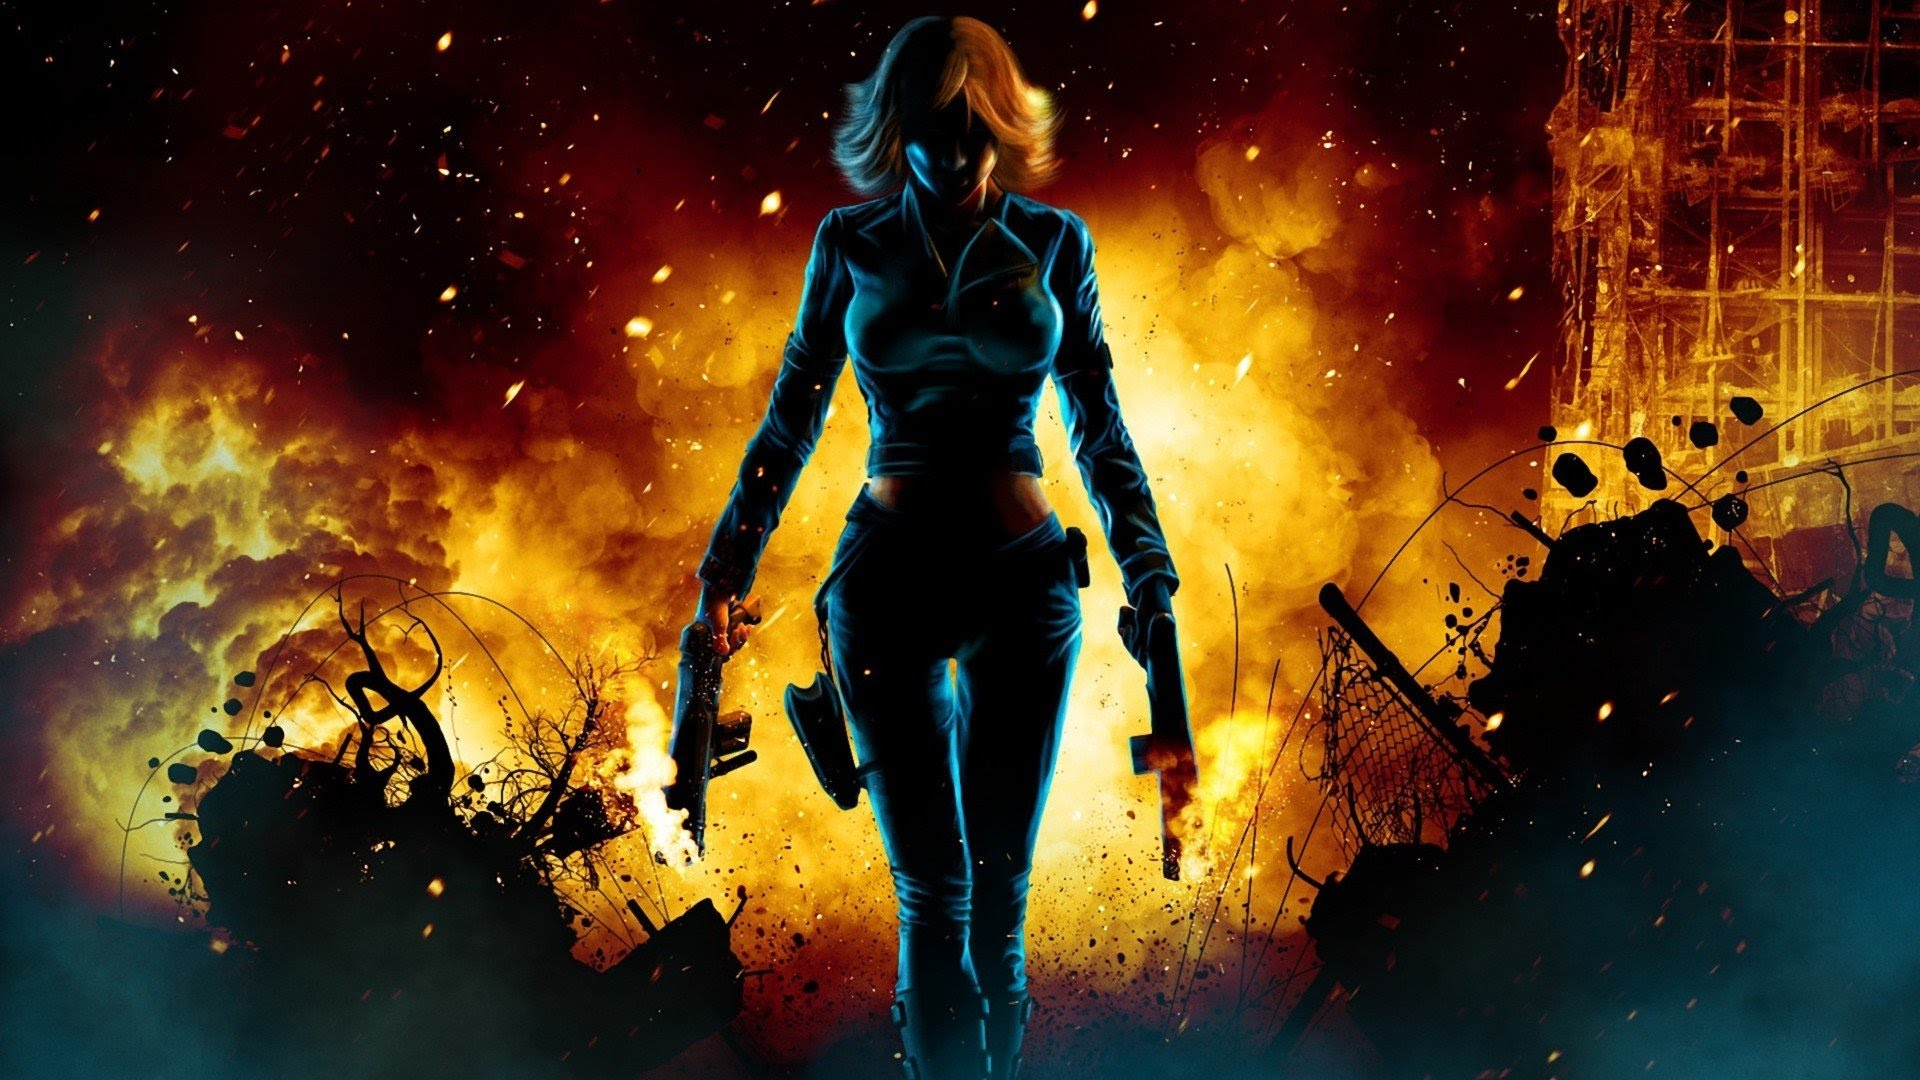 Perfect Dark: Source Backgrounds, Compatible - PC, Mobile, Gadgets| 1920x1080 px